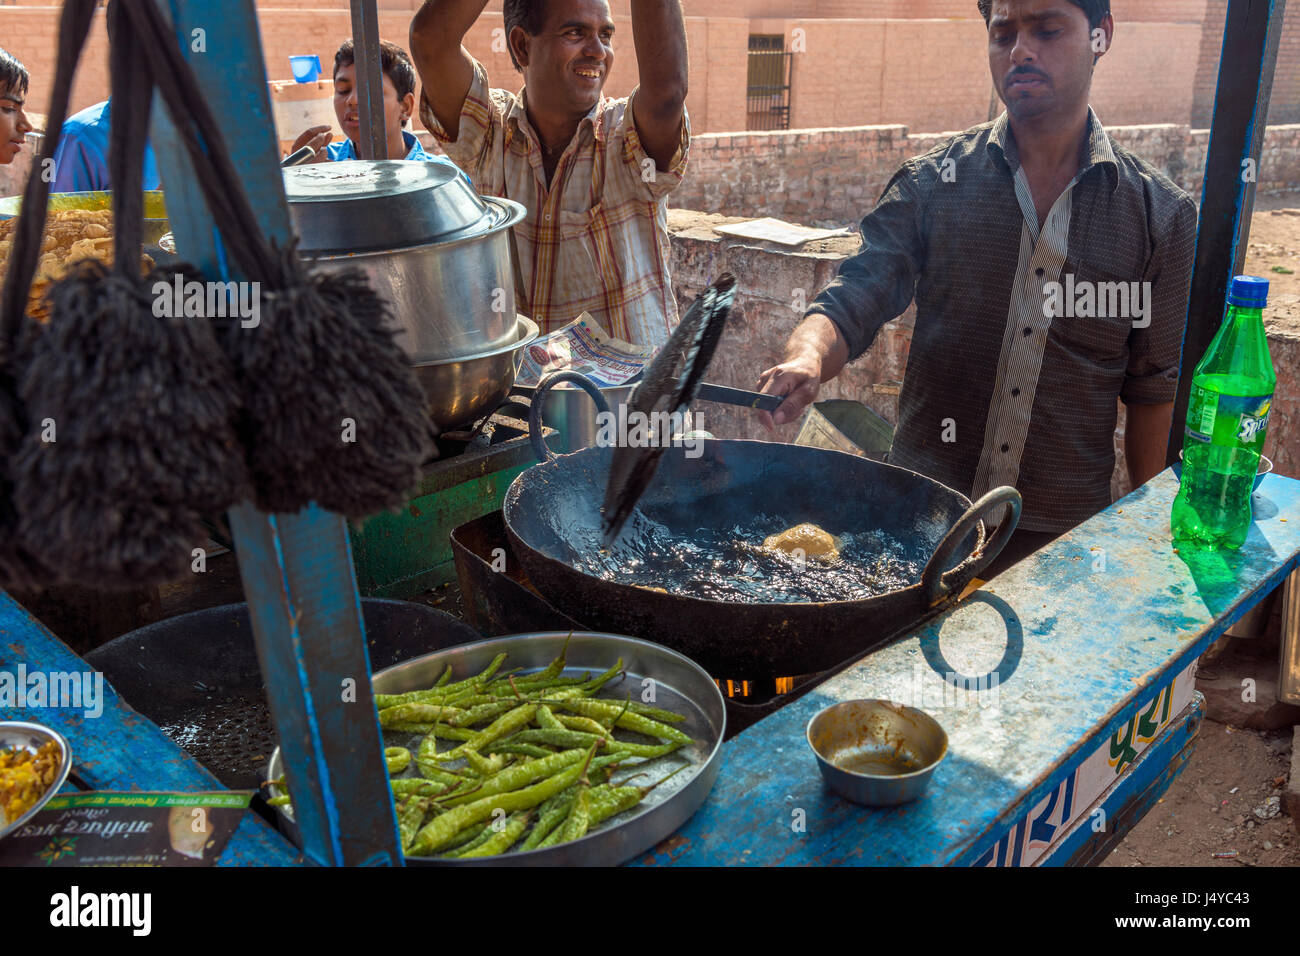 Jodhpur, India - 19 November 2012 - Street vendor fries the food for waiting customers, a very popular way of eating - Stock Image